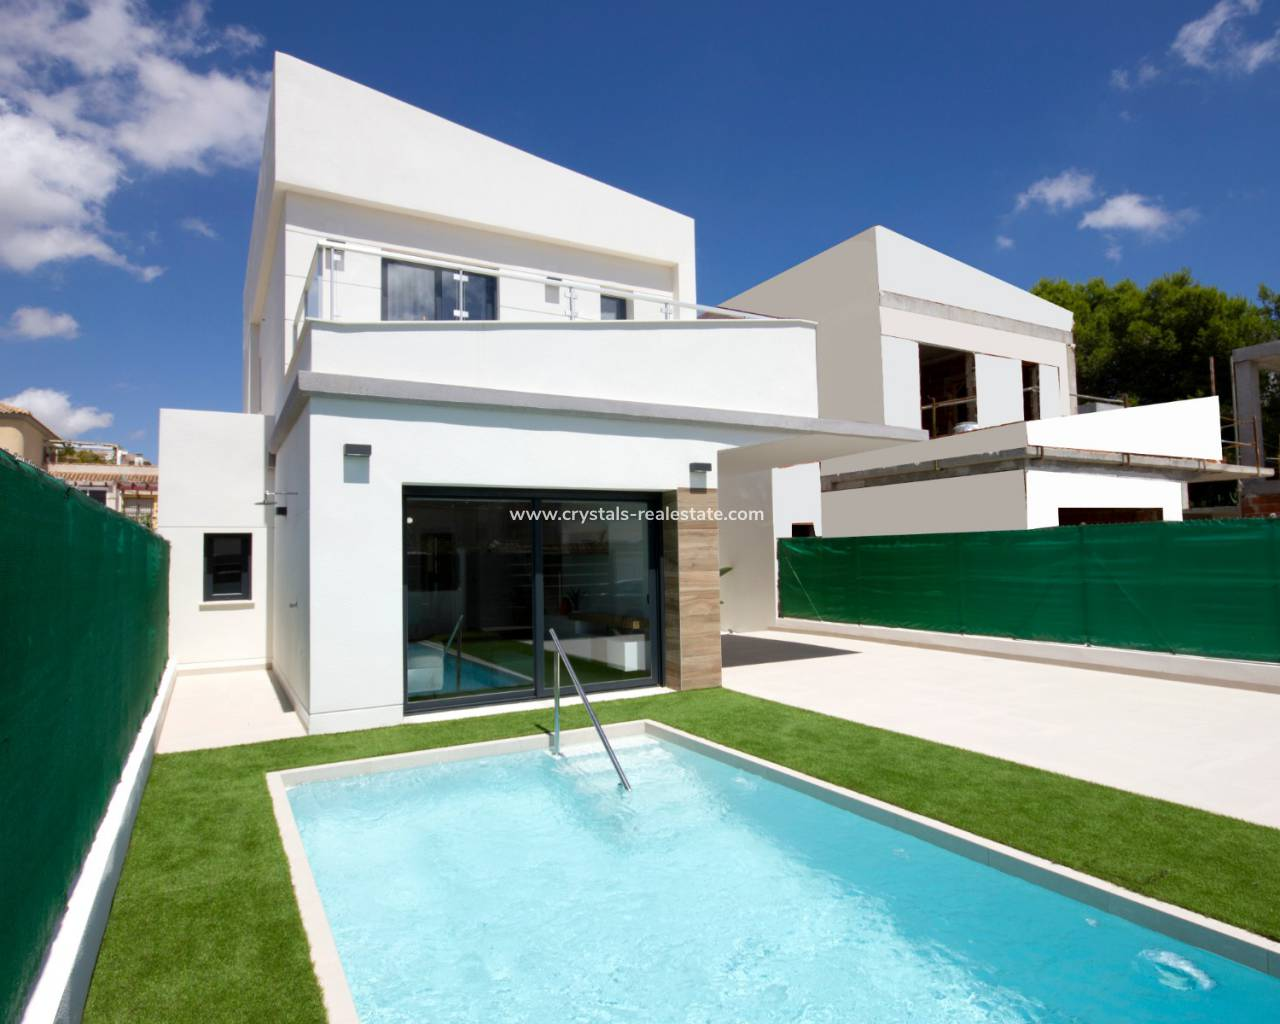 Detached Villa - New Build - Almoradí - Almoradí